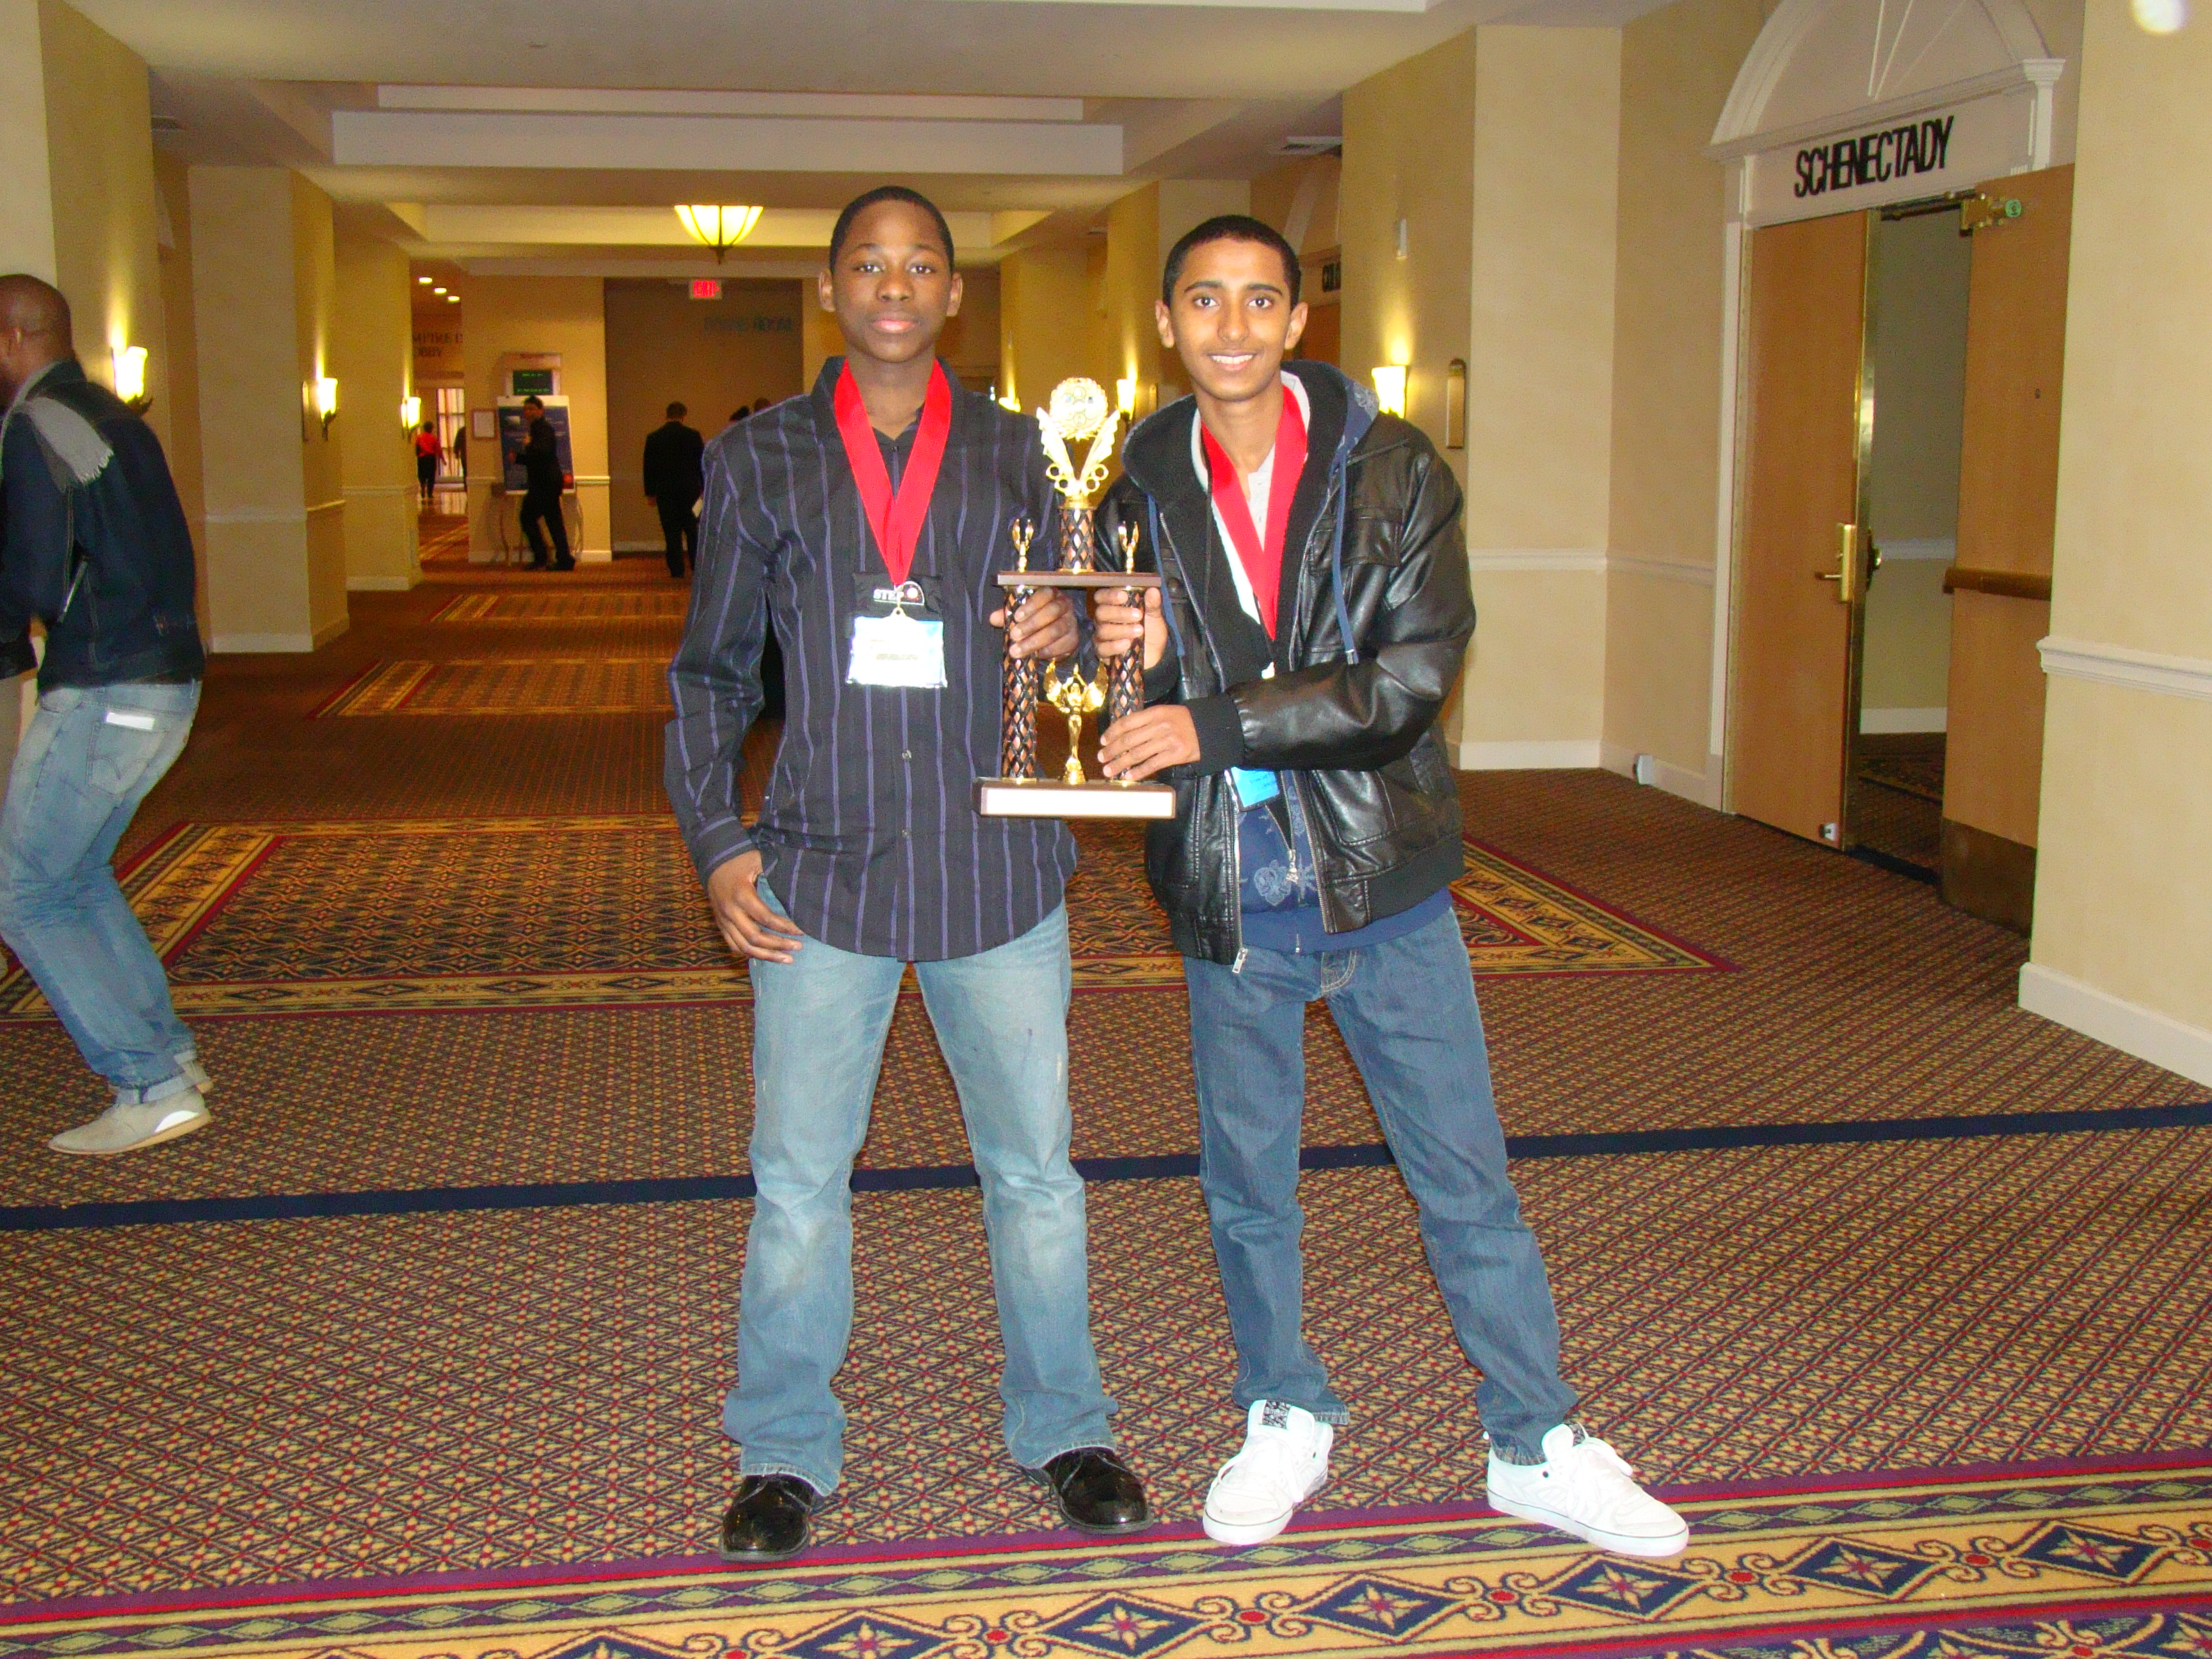 13th Annual STEP Statewide Student Conference, 2011 - Biological & Life Sciences, 3rd place winners: <em>How is fluoridation affecting local schools?</em> Shown from left, Khalil Stewart and Gedielem Girma; missing from picture, Cerrone Cunningham.